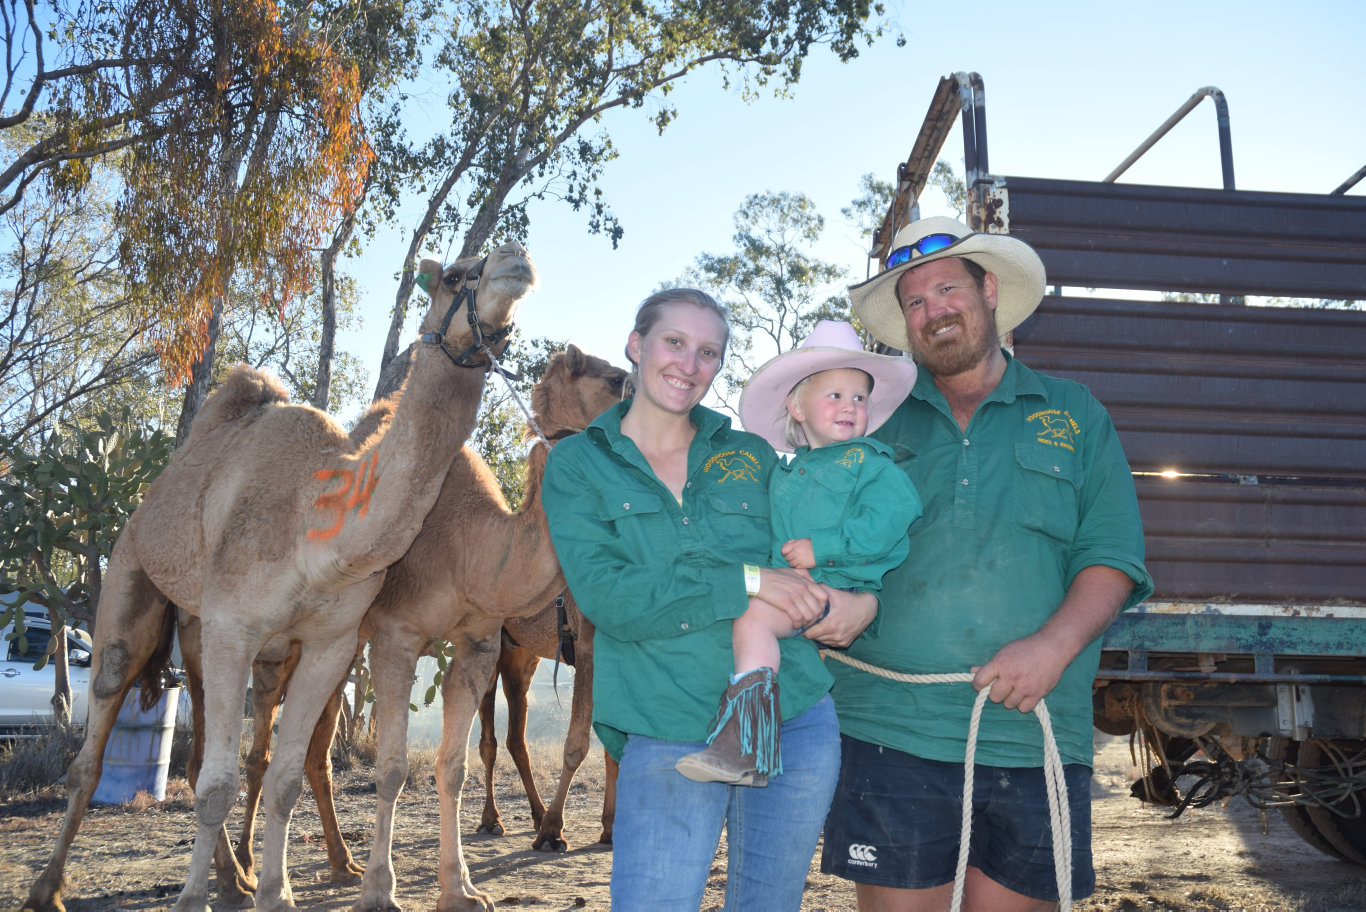 RACING HEARTS: The Woodhouse family from Boulia with Gunner the camel took out the 400 metre cup final at the Tara Festival of Culture and Camel Races over the weekend.